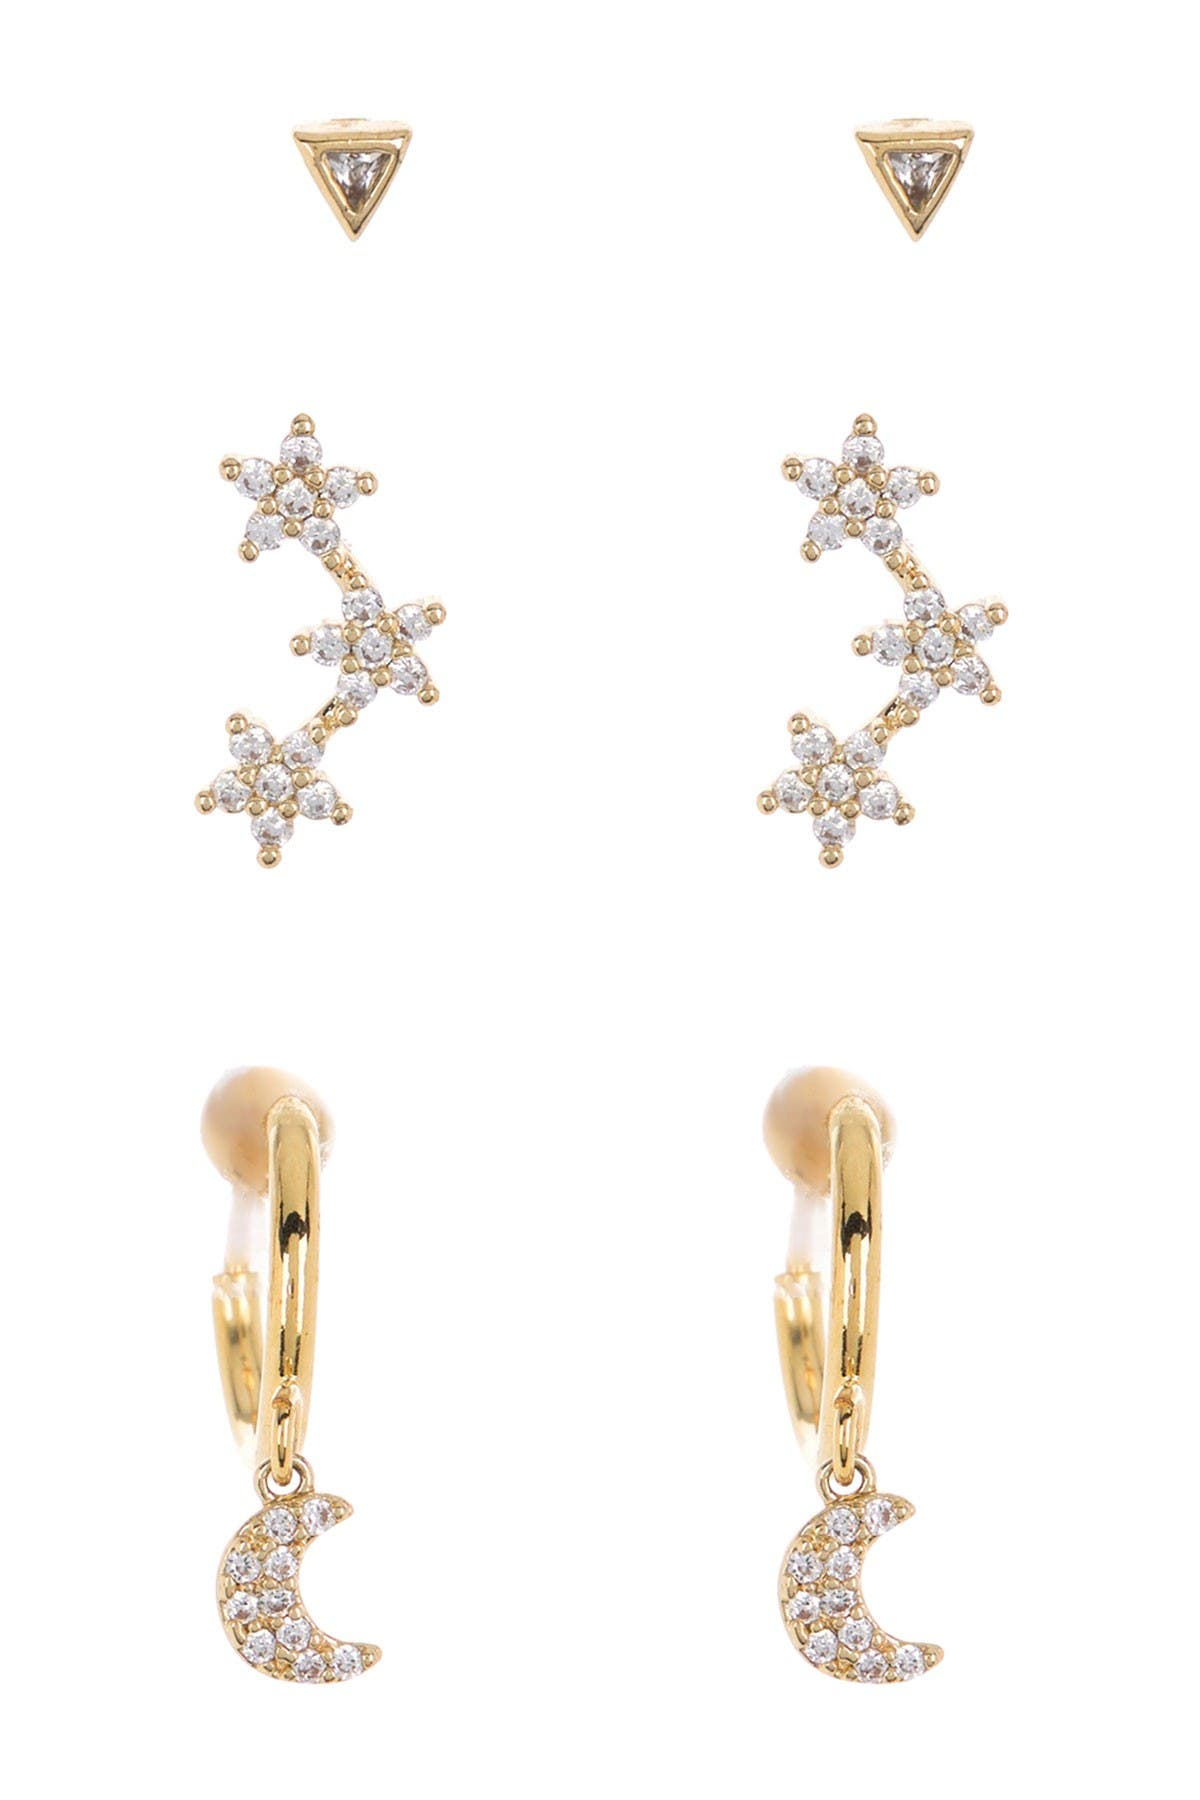 Image of Loren Olivia 14K Yellow Gold Plated Brass Star Moon Stud Earrings - Set of 3